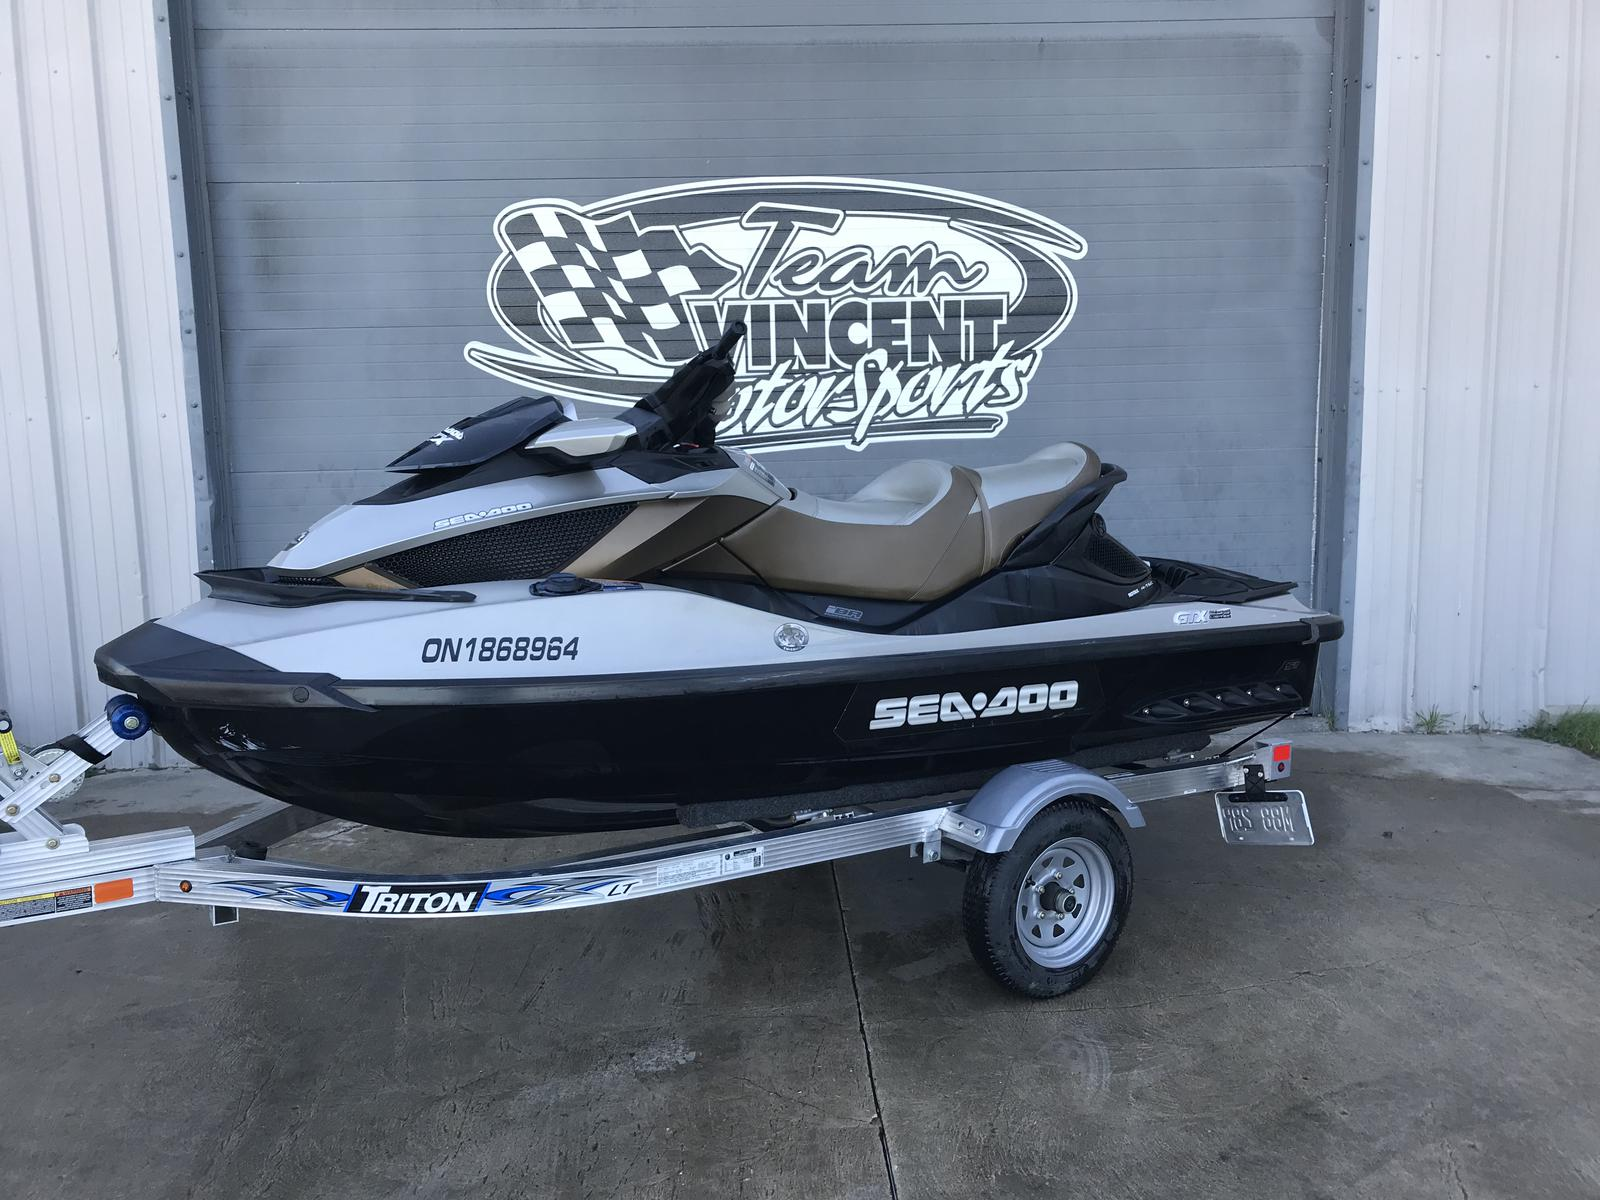 For Sale: 2009 Sea Doo Pwc Gtx Limited Is 255 ft<br/>Team Vincent Motorsports Inc